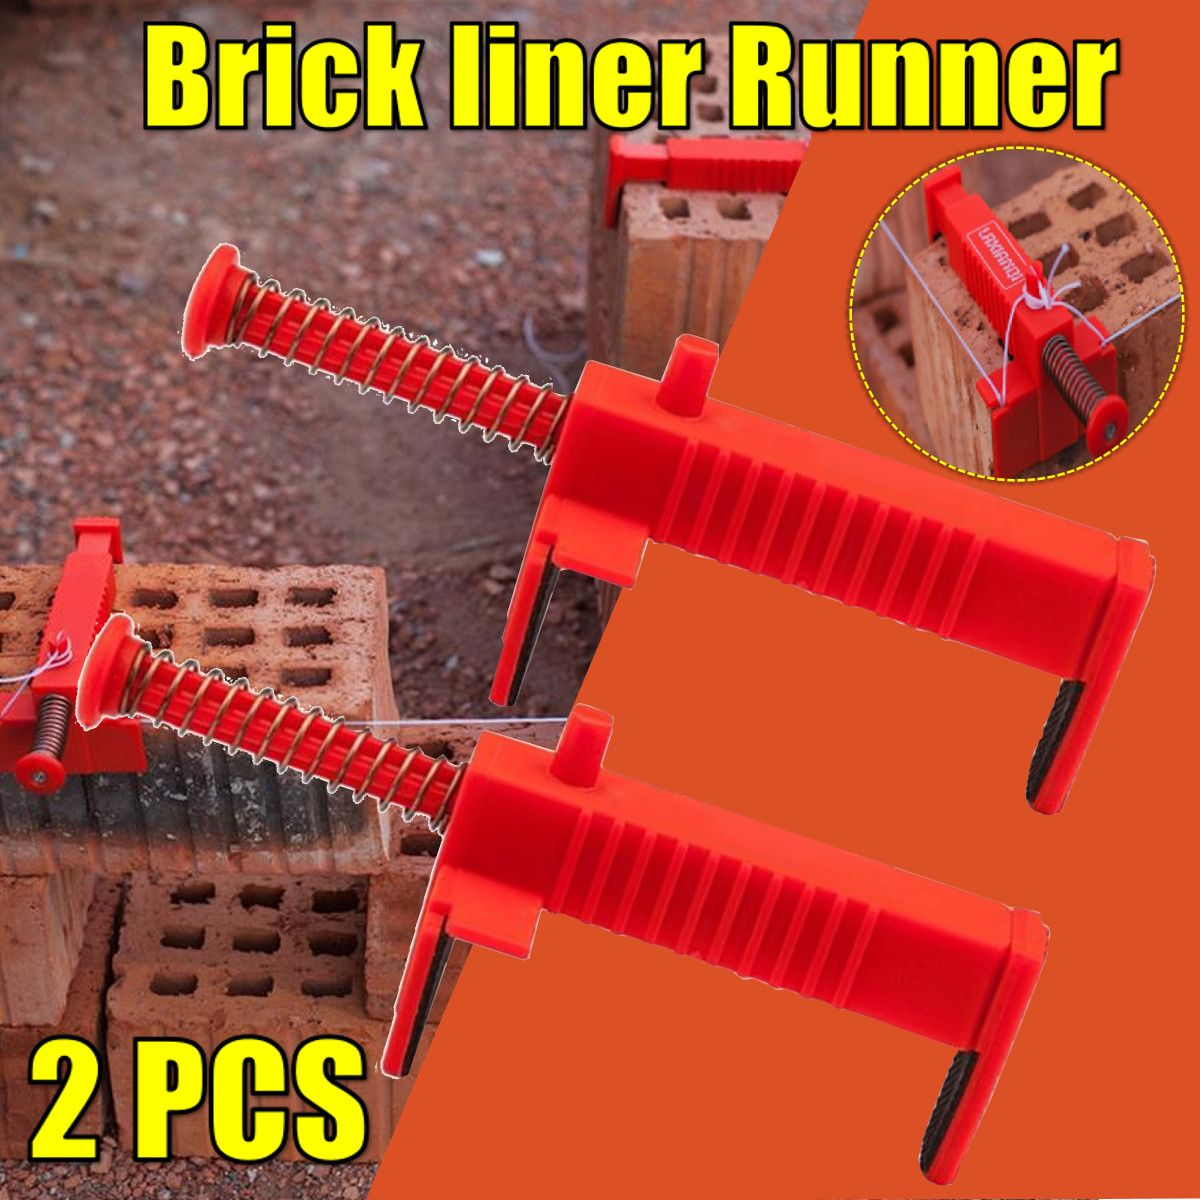 2Pcs Brick Liner Wall Builder Building Wire Frame Brick Liner Runner Wire Drawer Bricklaying Tool Fixer Building Construction